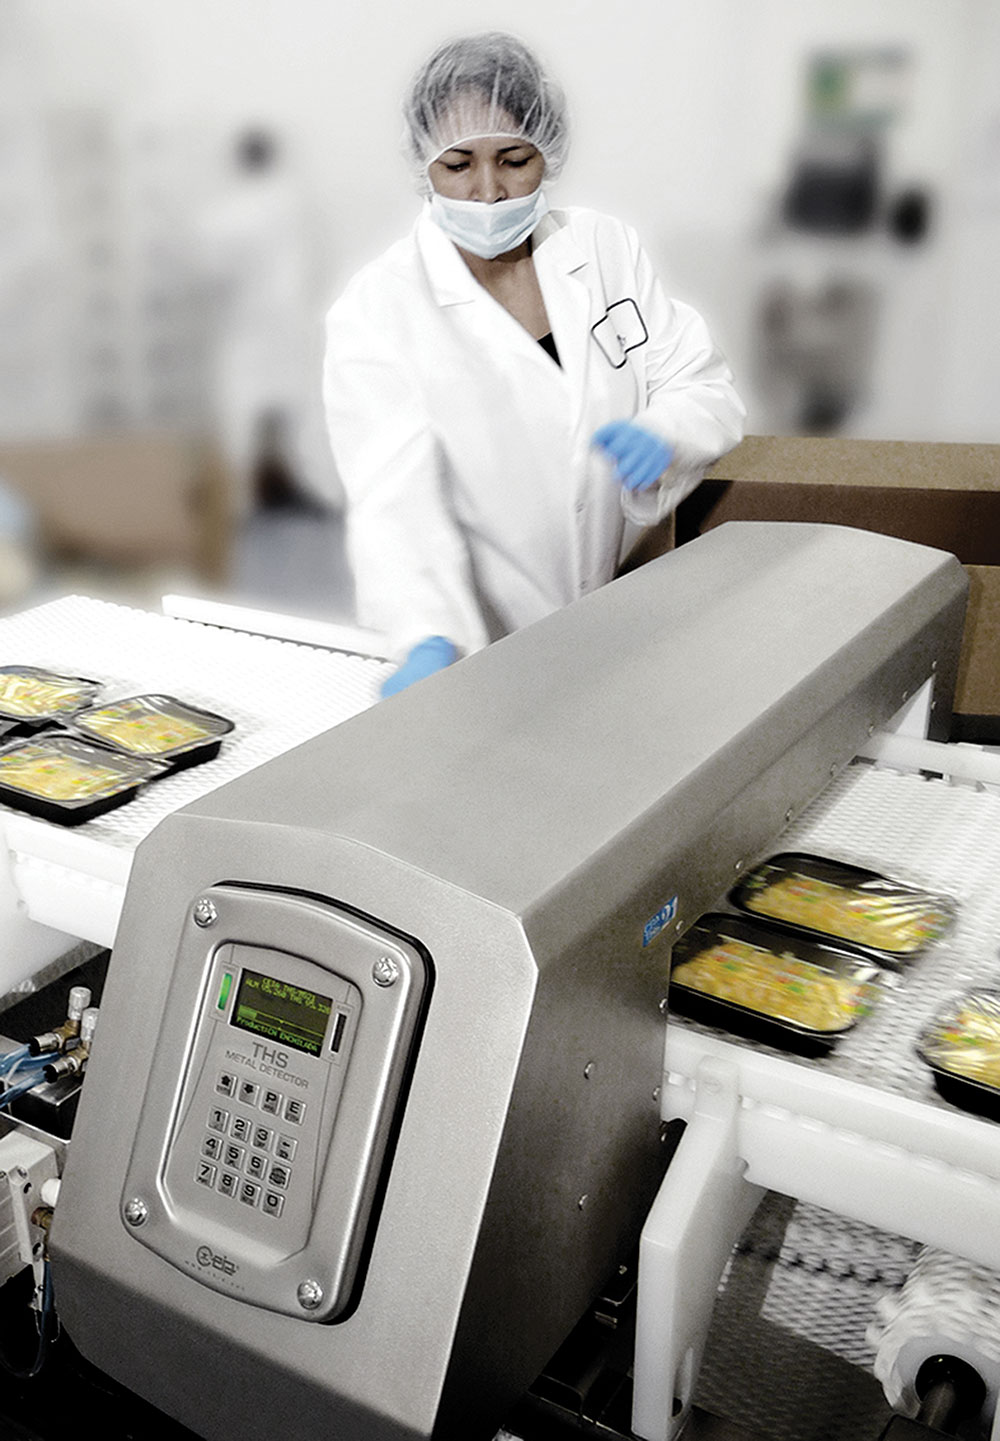 Food Inspection Systems by Ishida and CEIA